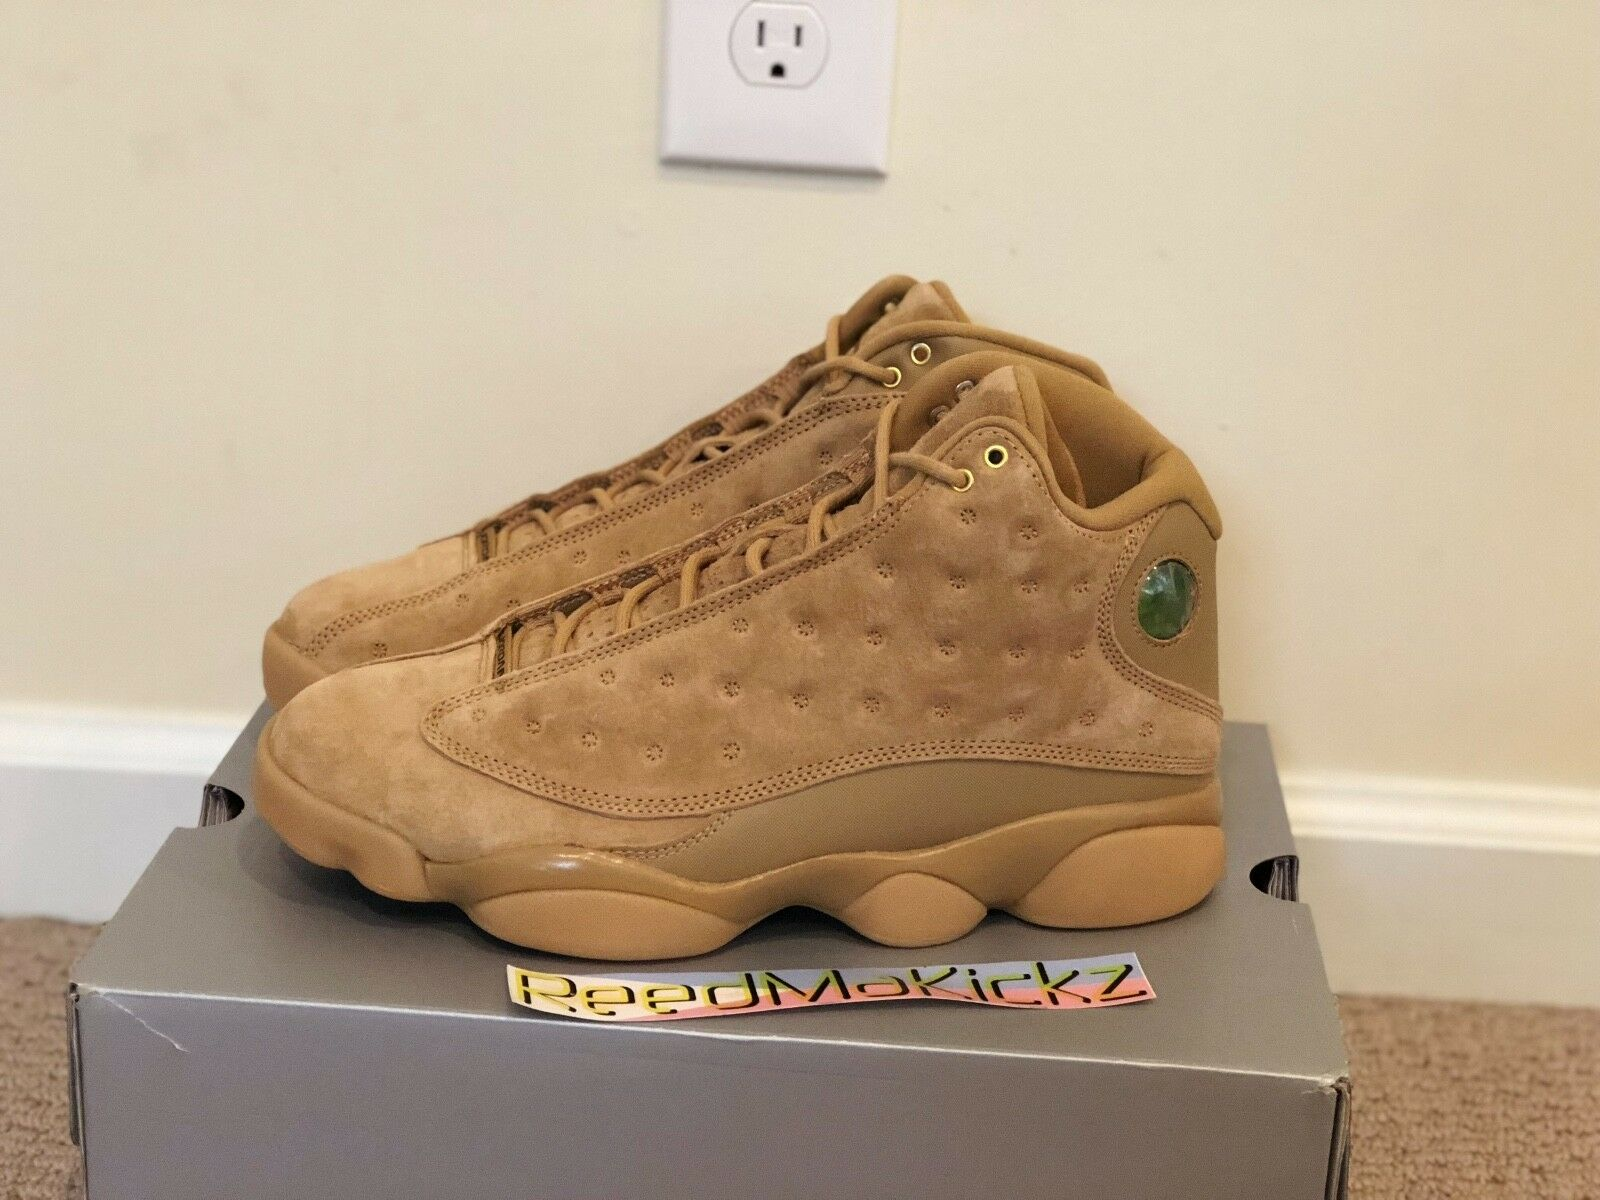 Nike Air Jordan 13 XIII Retro 2018 Wheat Elemental Gold Mens sizes 414571 705